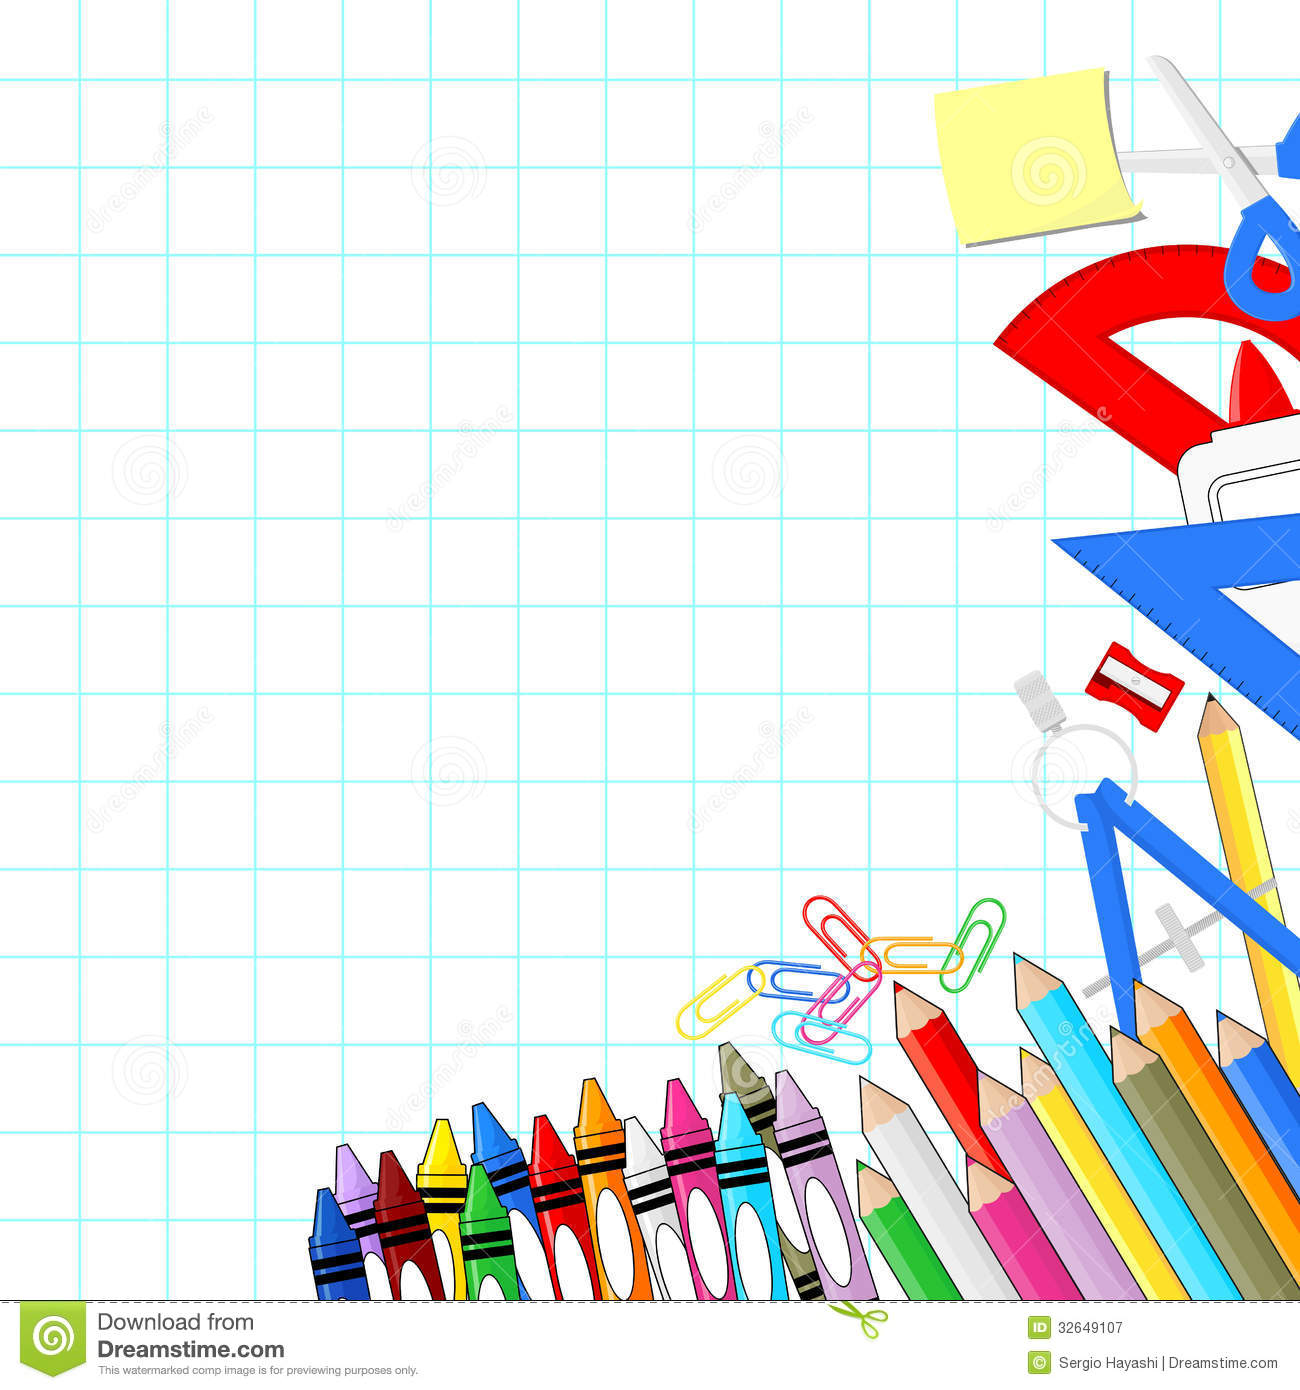 Supplies panda free images. Background clipart school